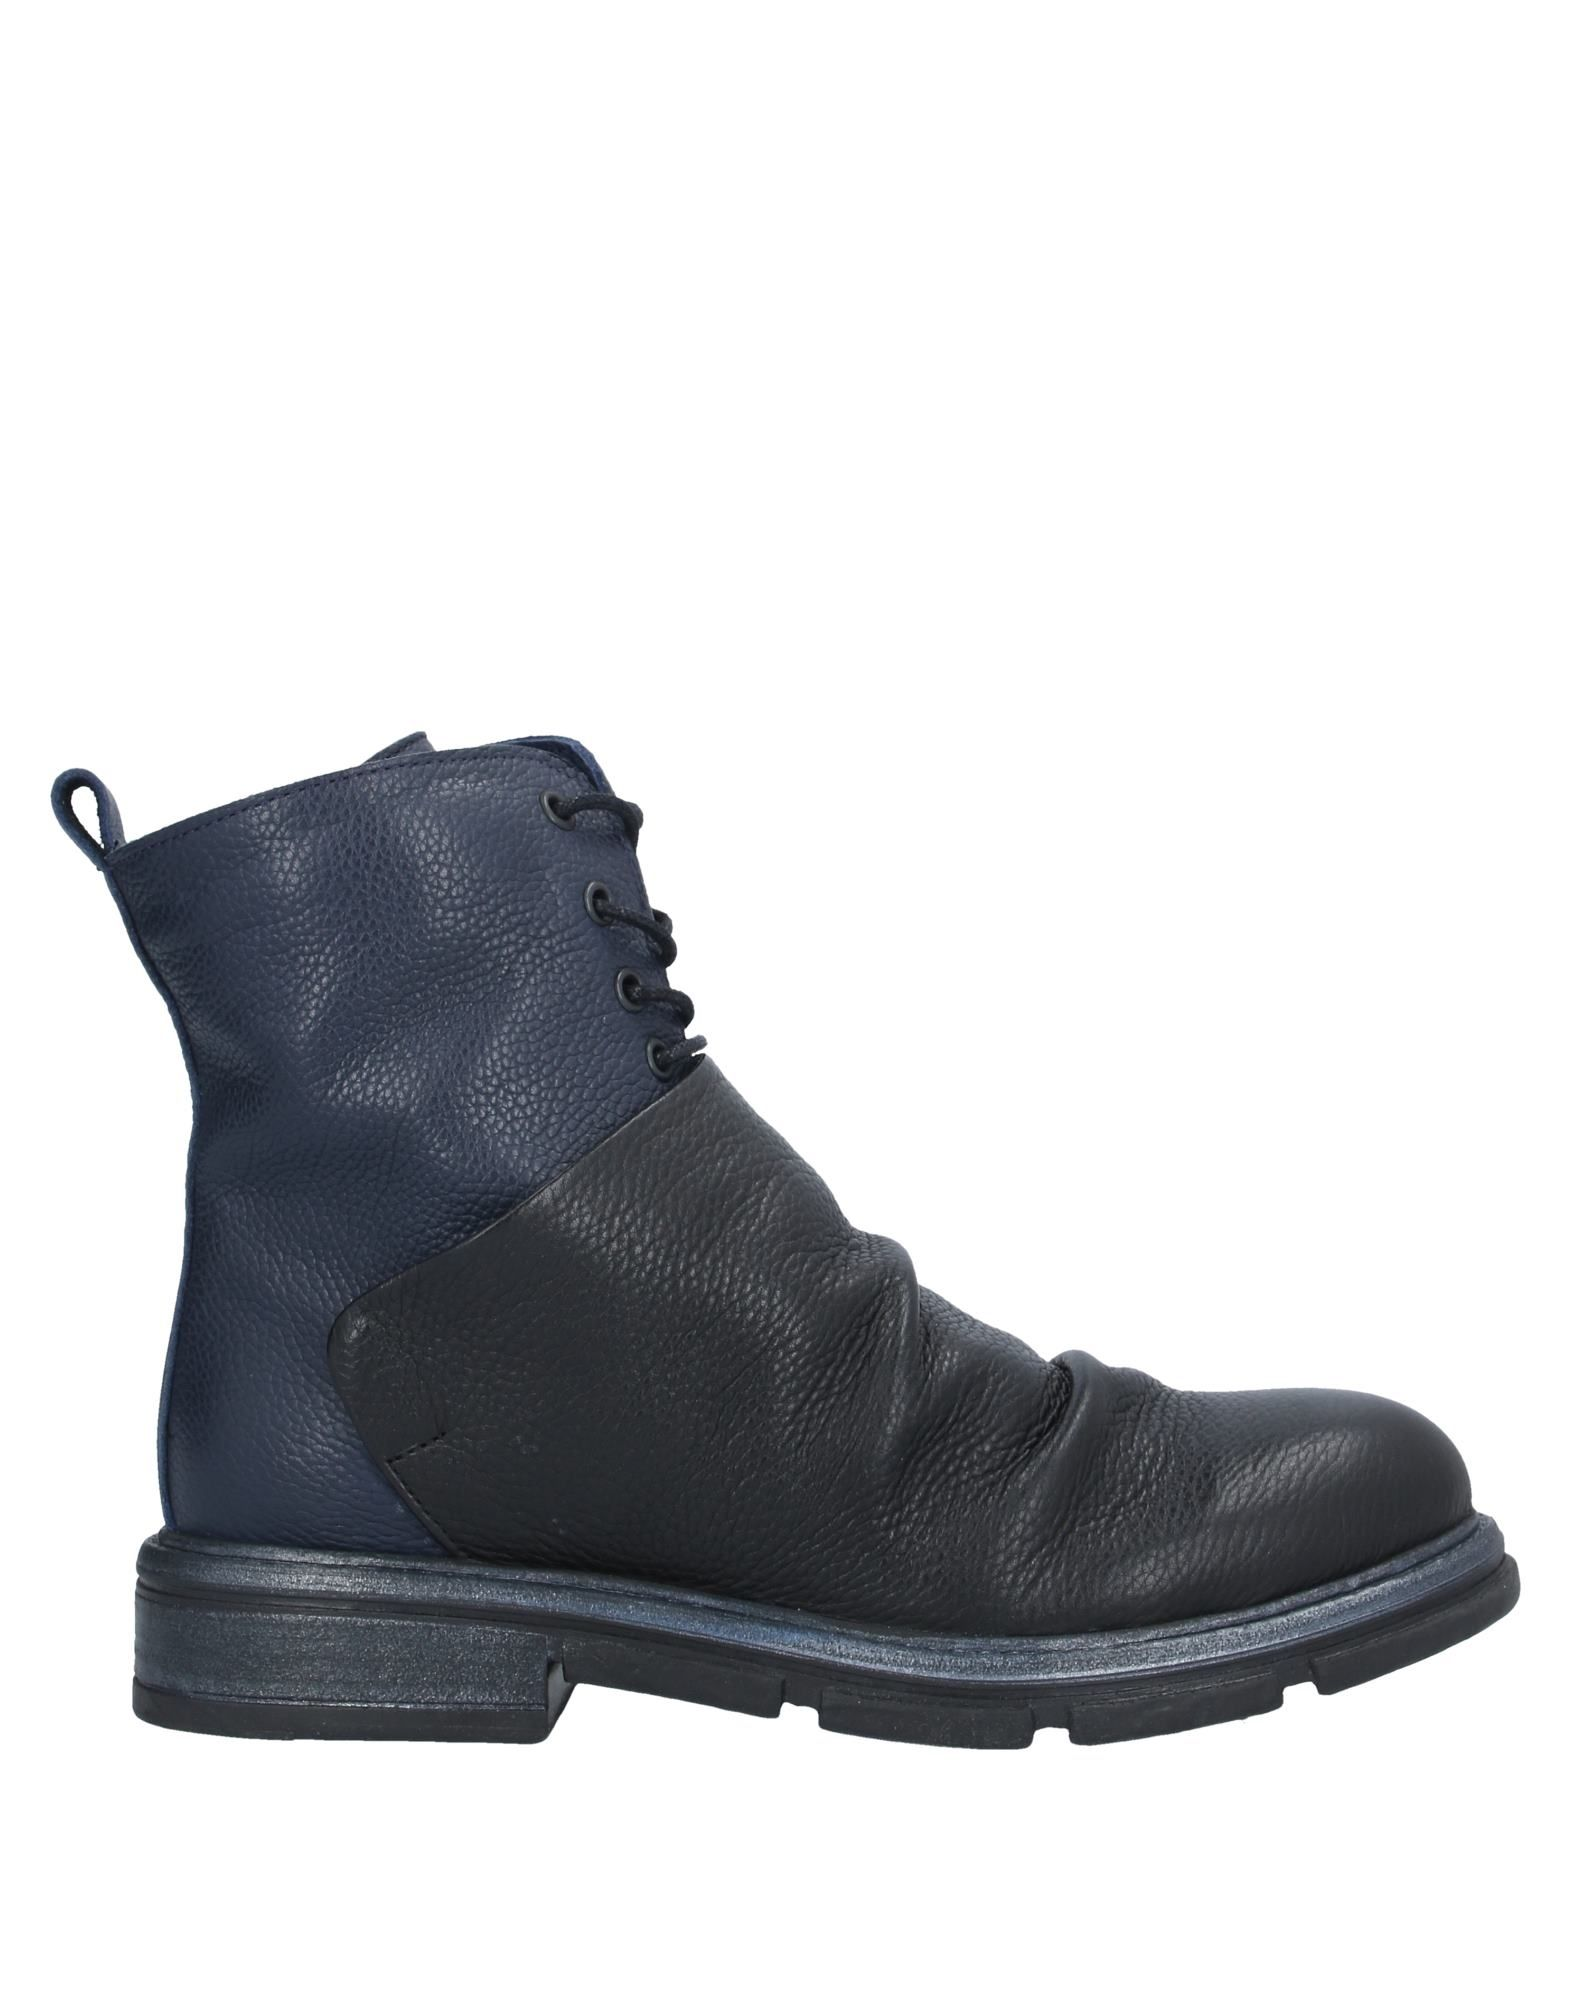 BUENO Ankle boots. textured leather, no appliqués, solid color, laces, round toeline, square heel, fully lined, rubber sole, contains non-textile parts of animal origin. Soft Leather